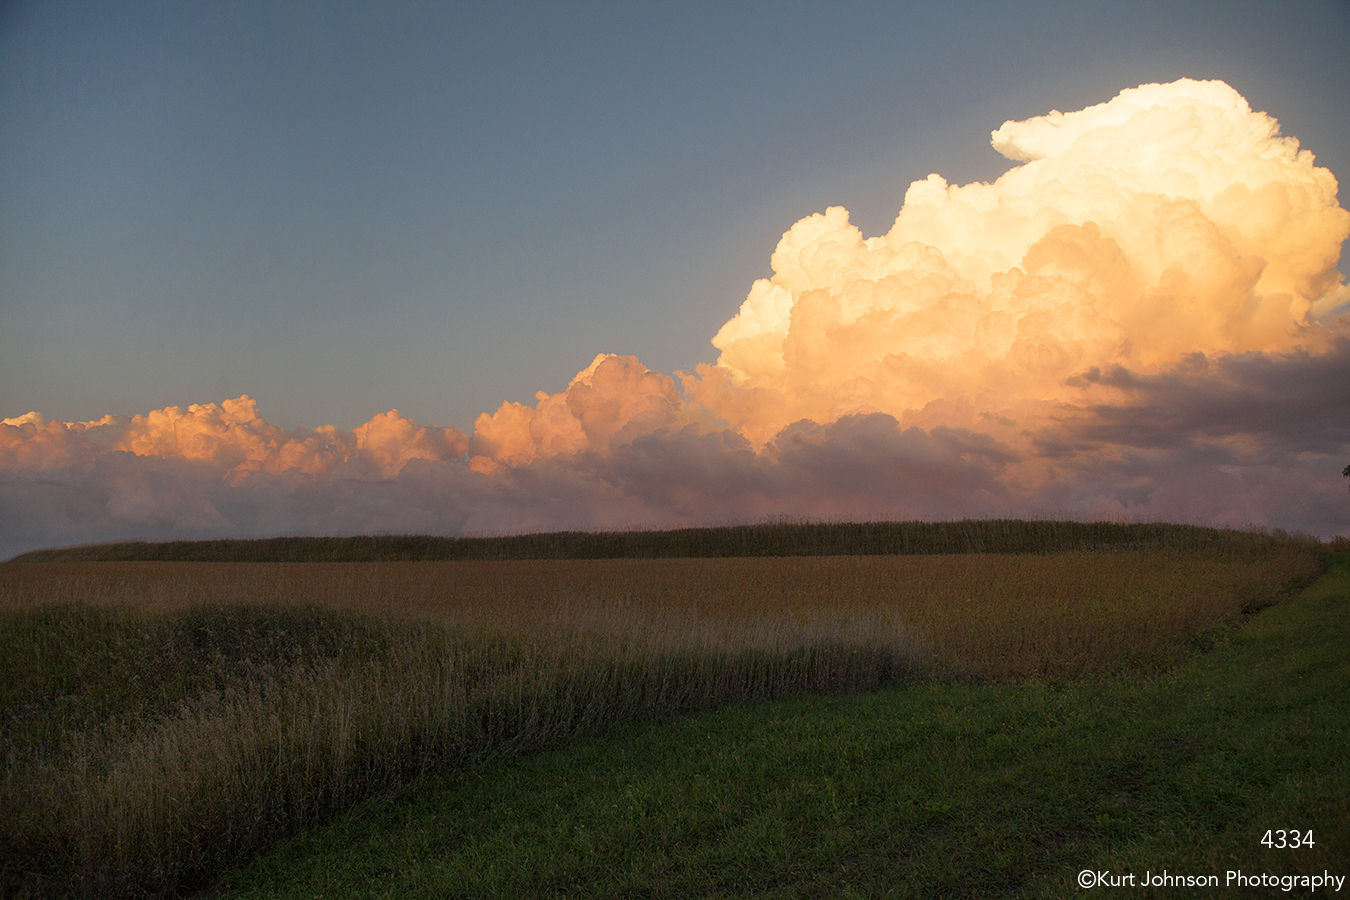 landscape grasses clouds sunset midwest fields